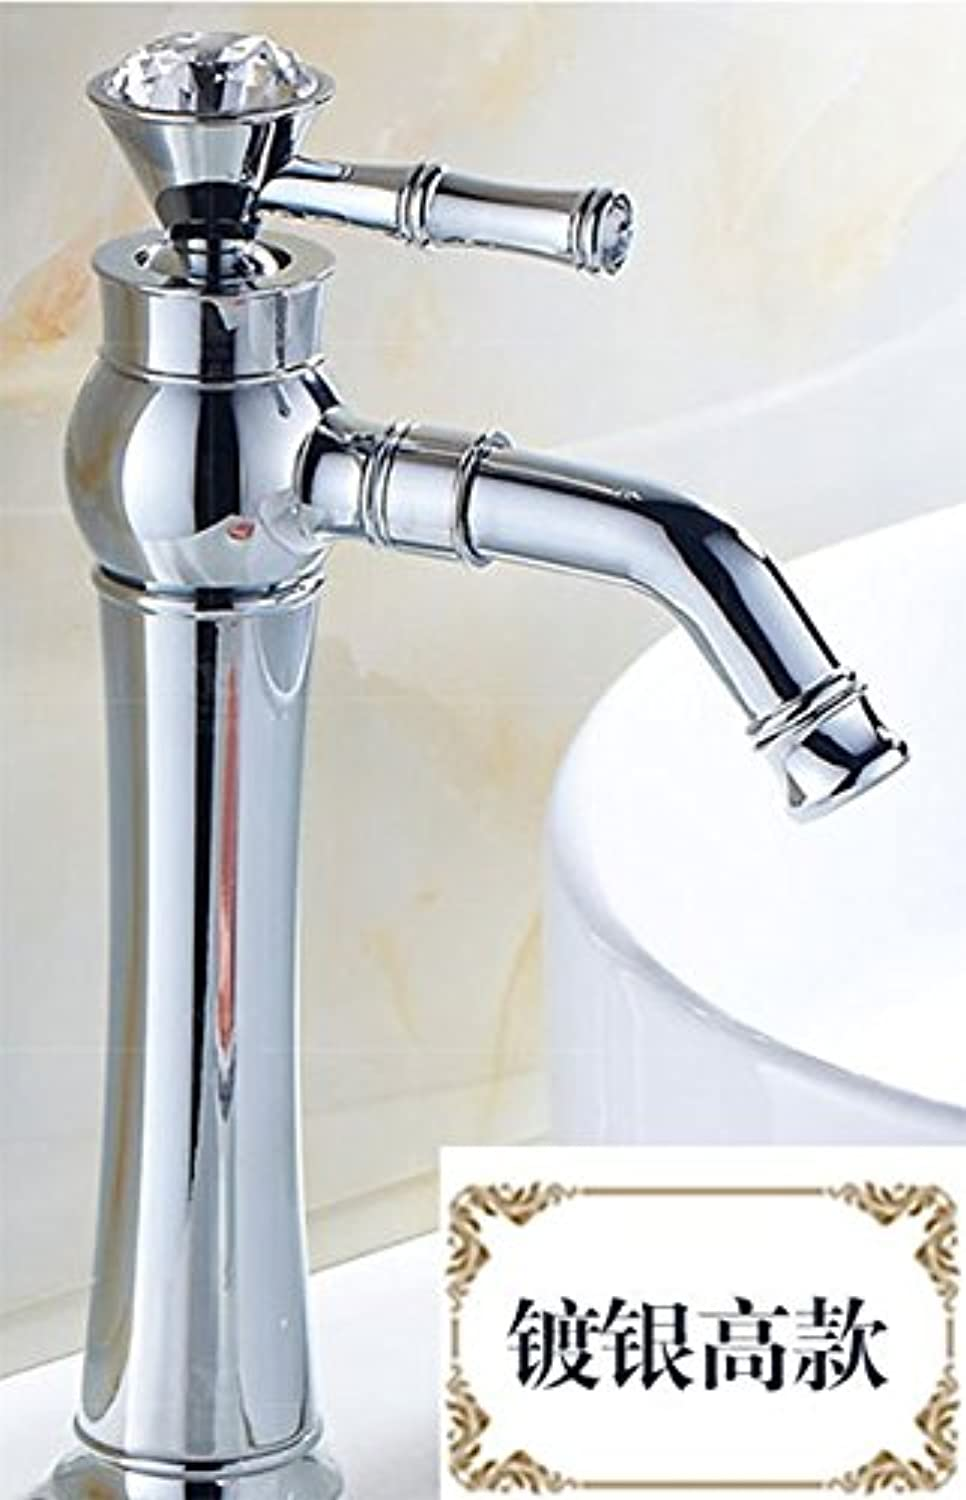 Hlluya Professional Sink Mixer Tap Kitchen Faucet The bathroom, single handle single hole, copper, basins, Sinks Faucets,b3013cm